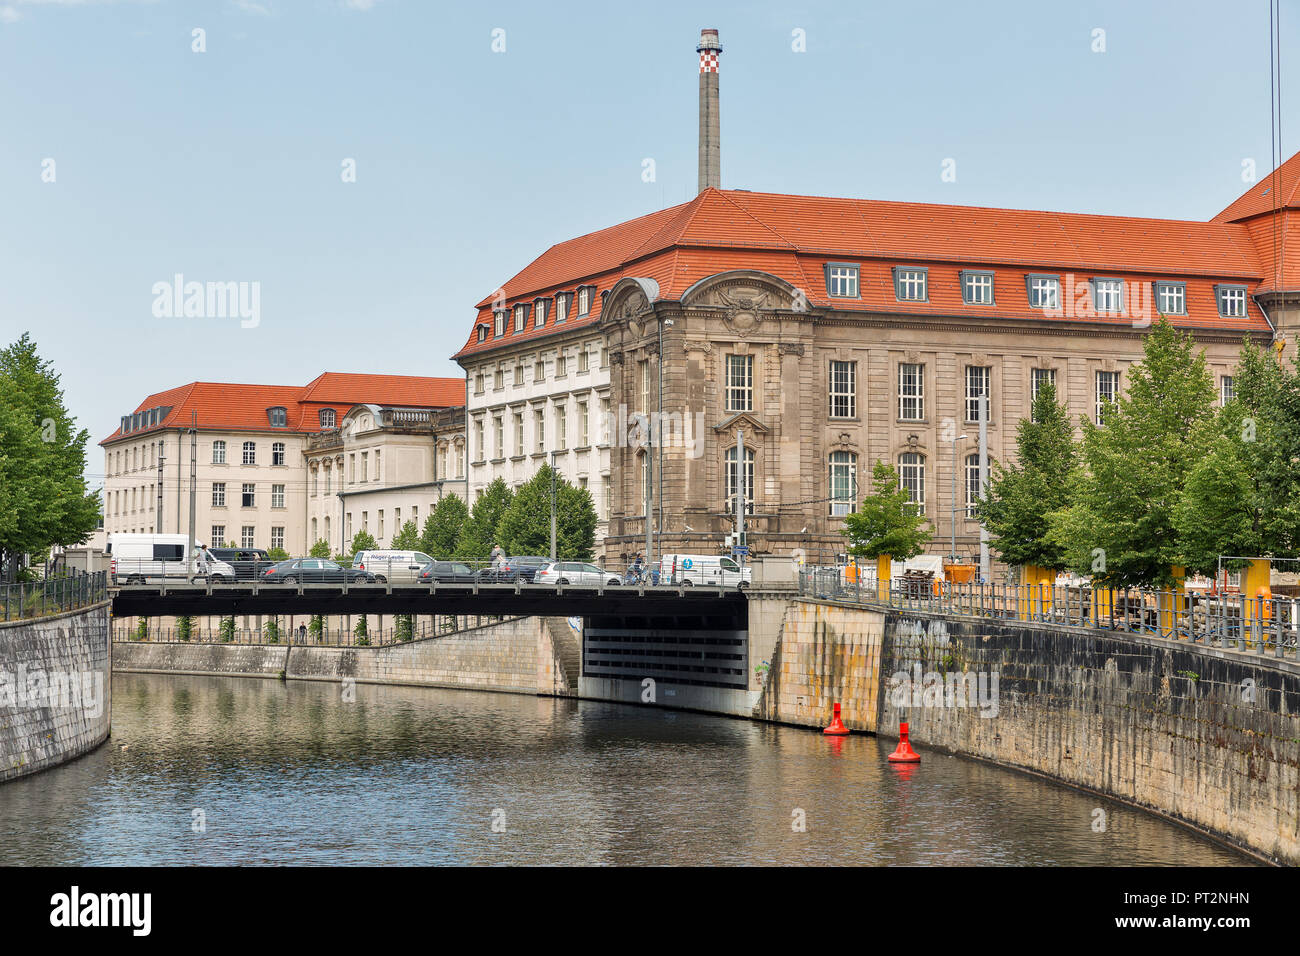 BERLIN, GERMANY - JULY 13, 2018: Bridge over Westhafenkanal close to Federal Ministry for Economic Affairs and Energy building on Invalidenstrasse str Stock Photo